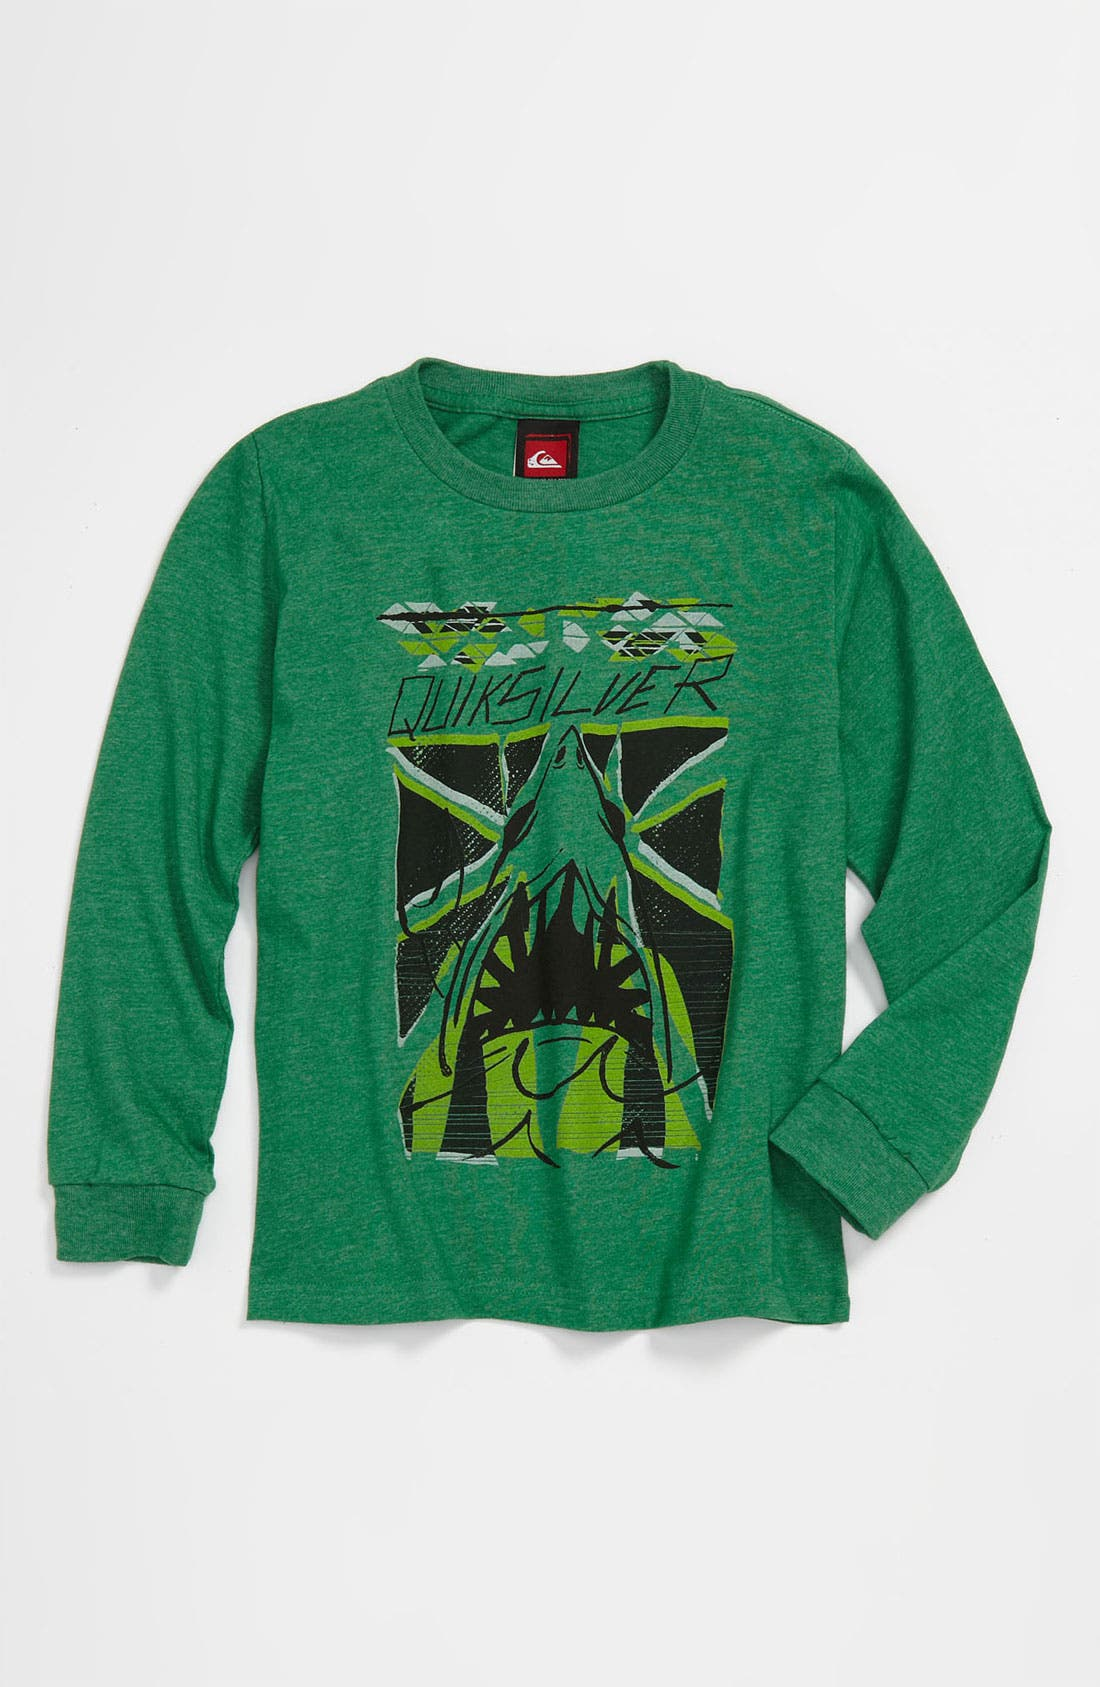 Alternate Image 1 Selected - Quiksilver 'Other World' Graphic T-Shirt (Big Boys)